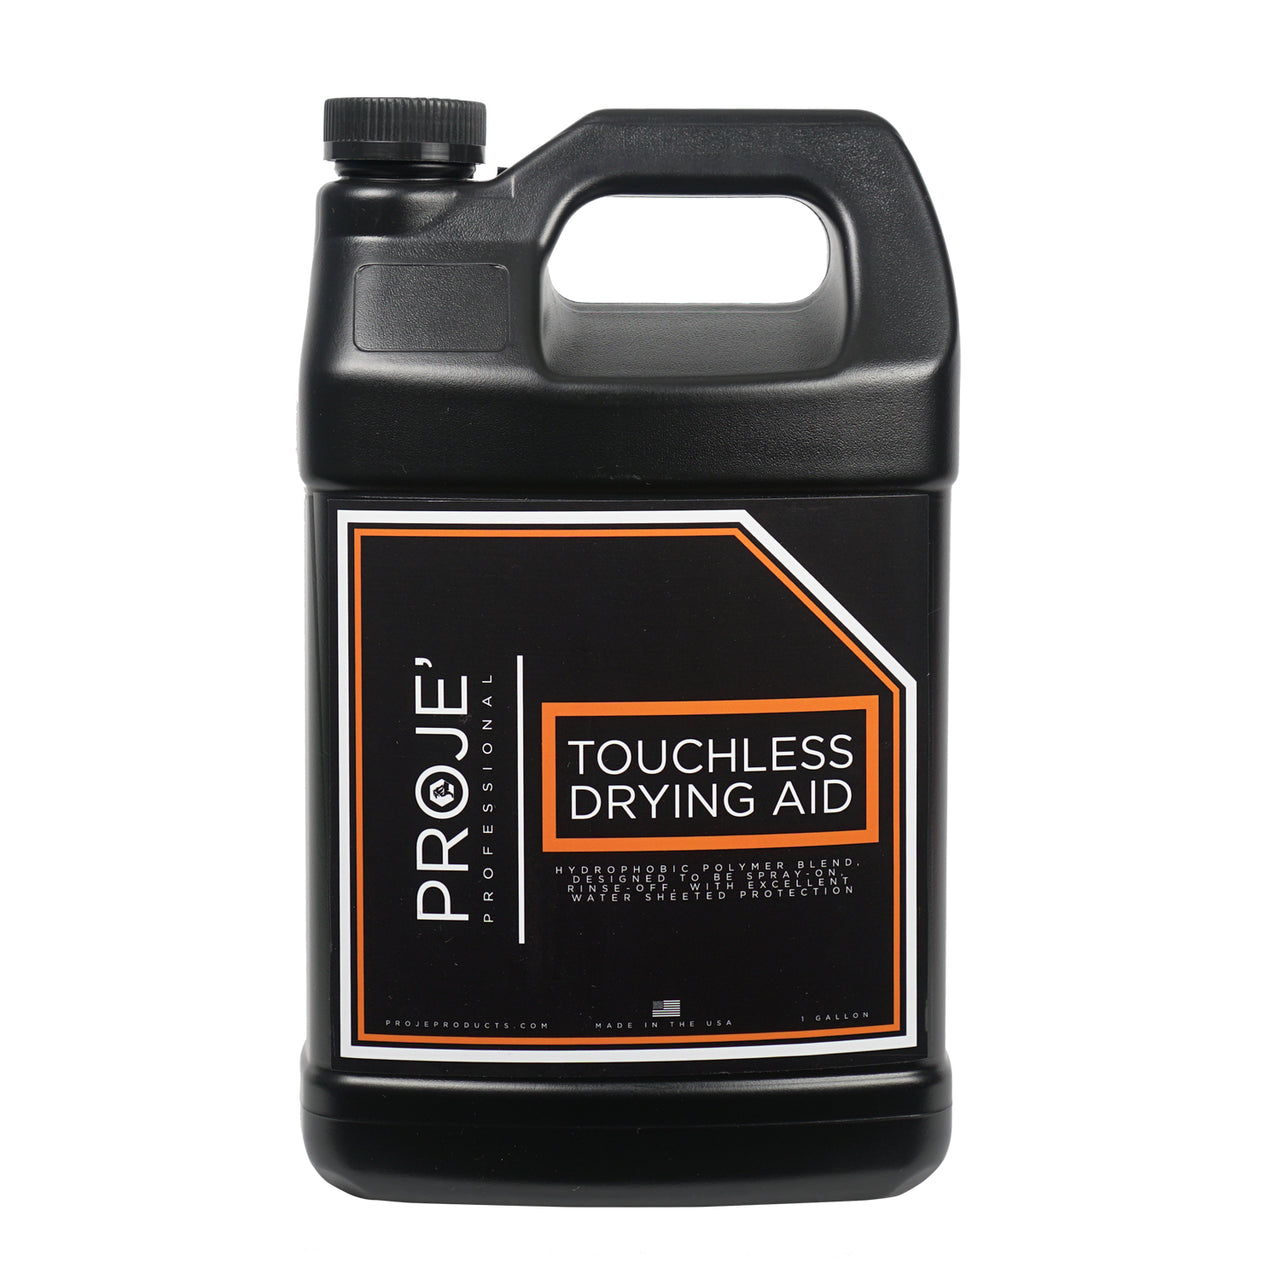 TOUCHLESS DRYING AID 1 GALLON